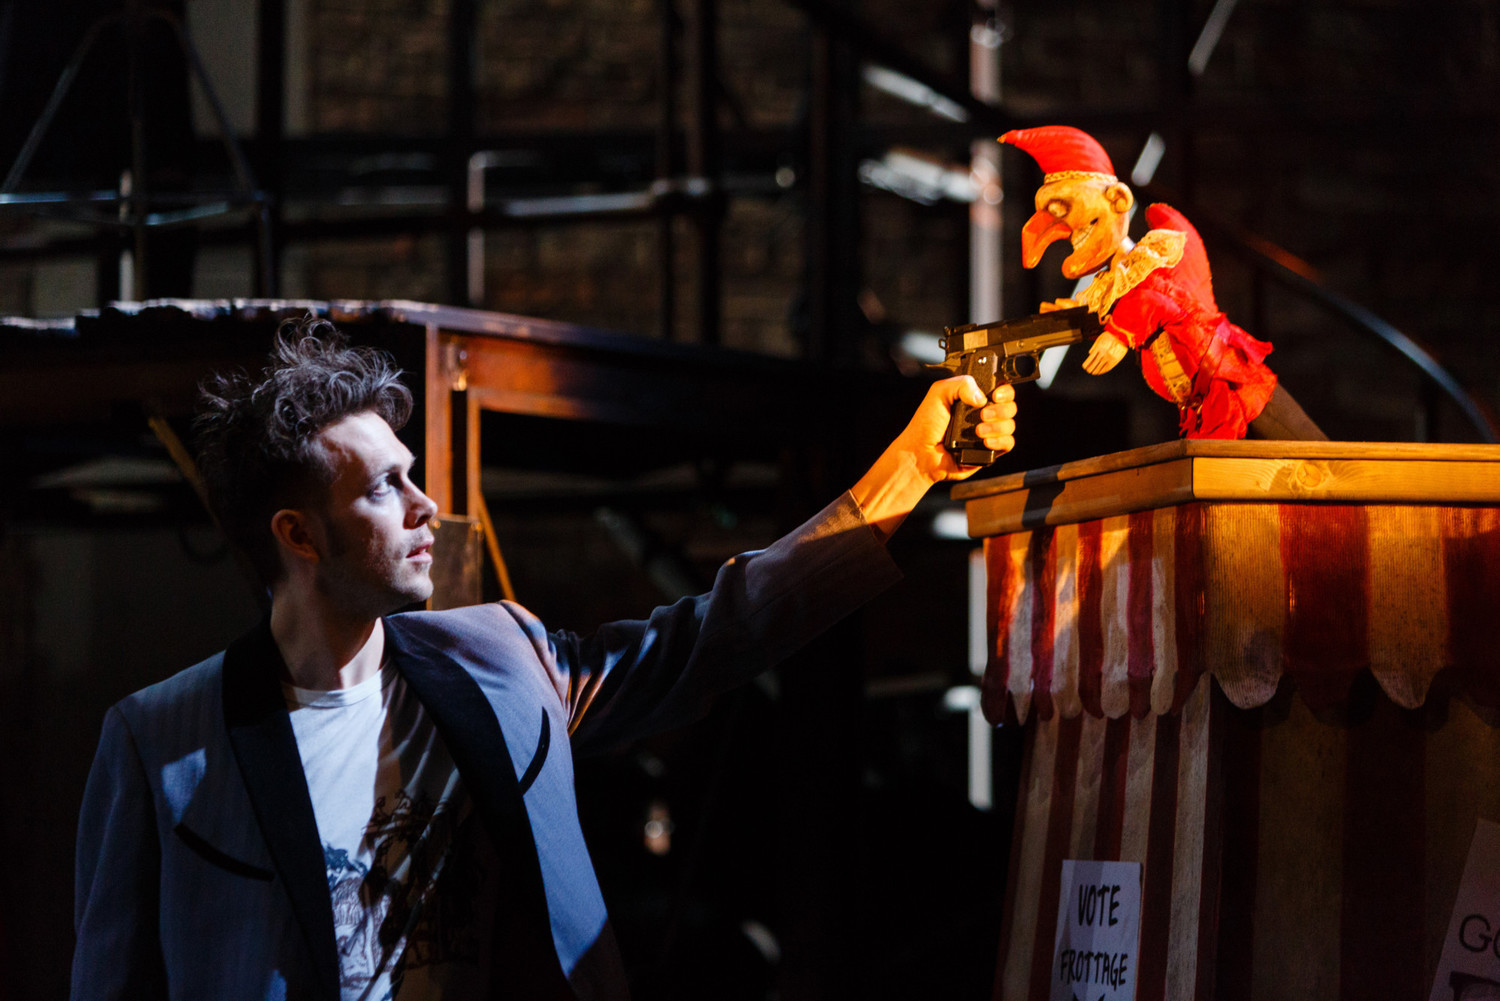 BWW Review: DEAD DOG IN A SUITCASE (AND OTHER LOVE SONGS), Lyric Hammersmith